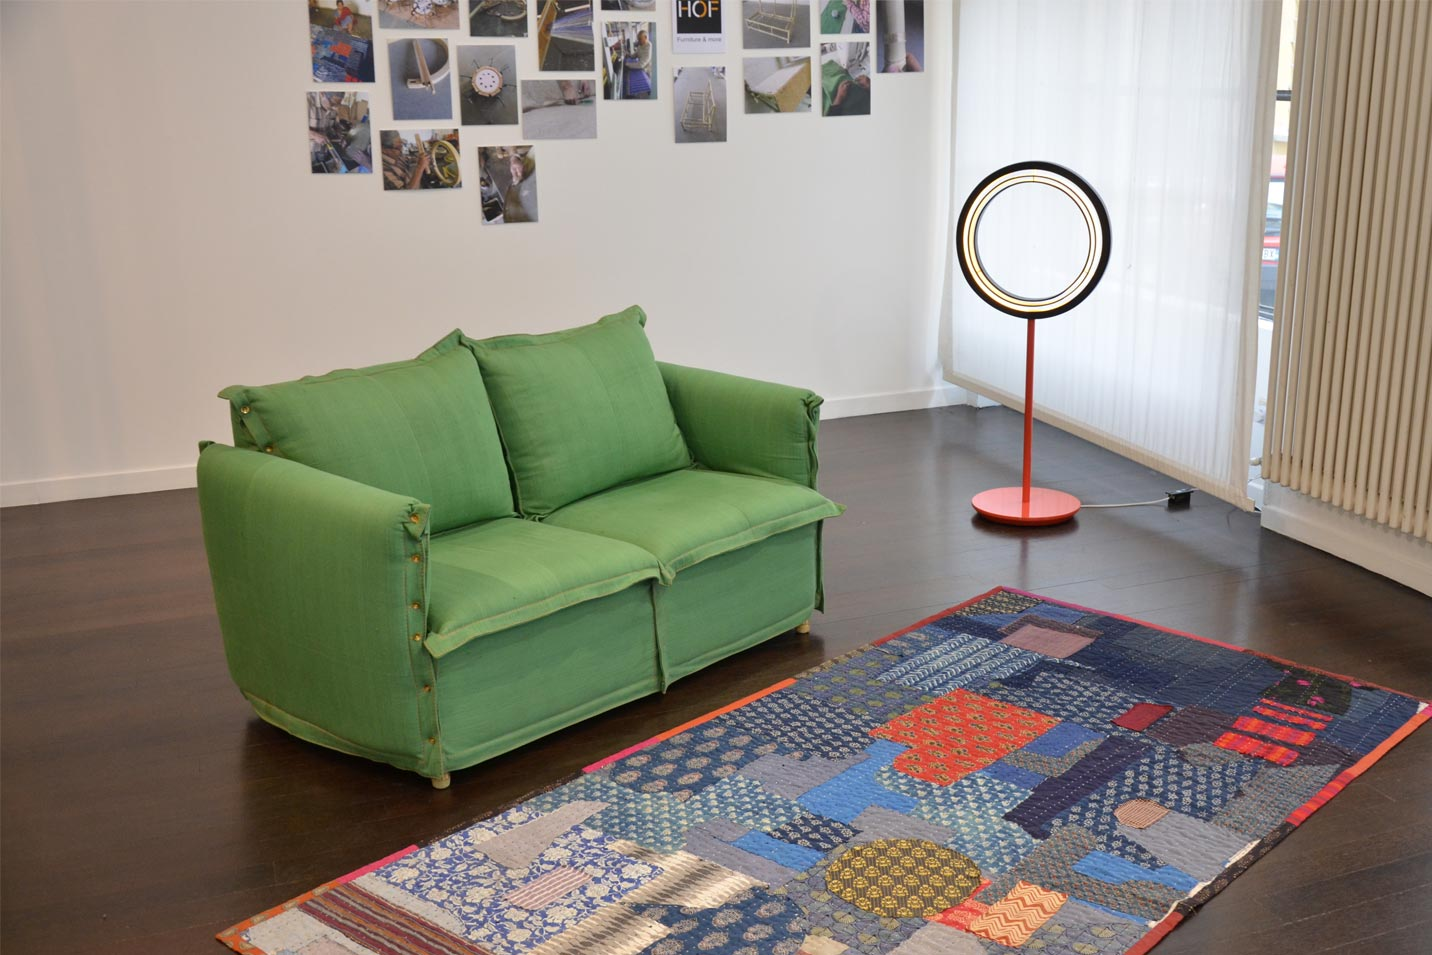 Hof ruled the international design fair at milan italy for International decor furniture